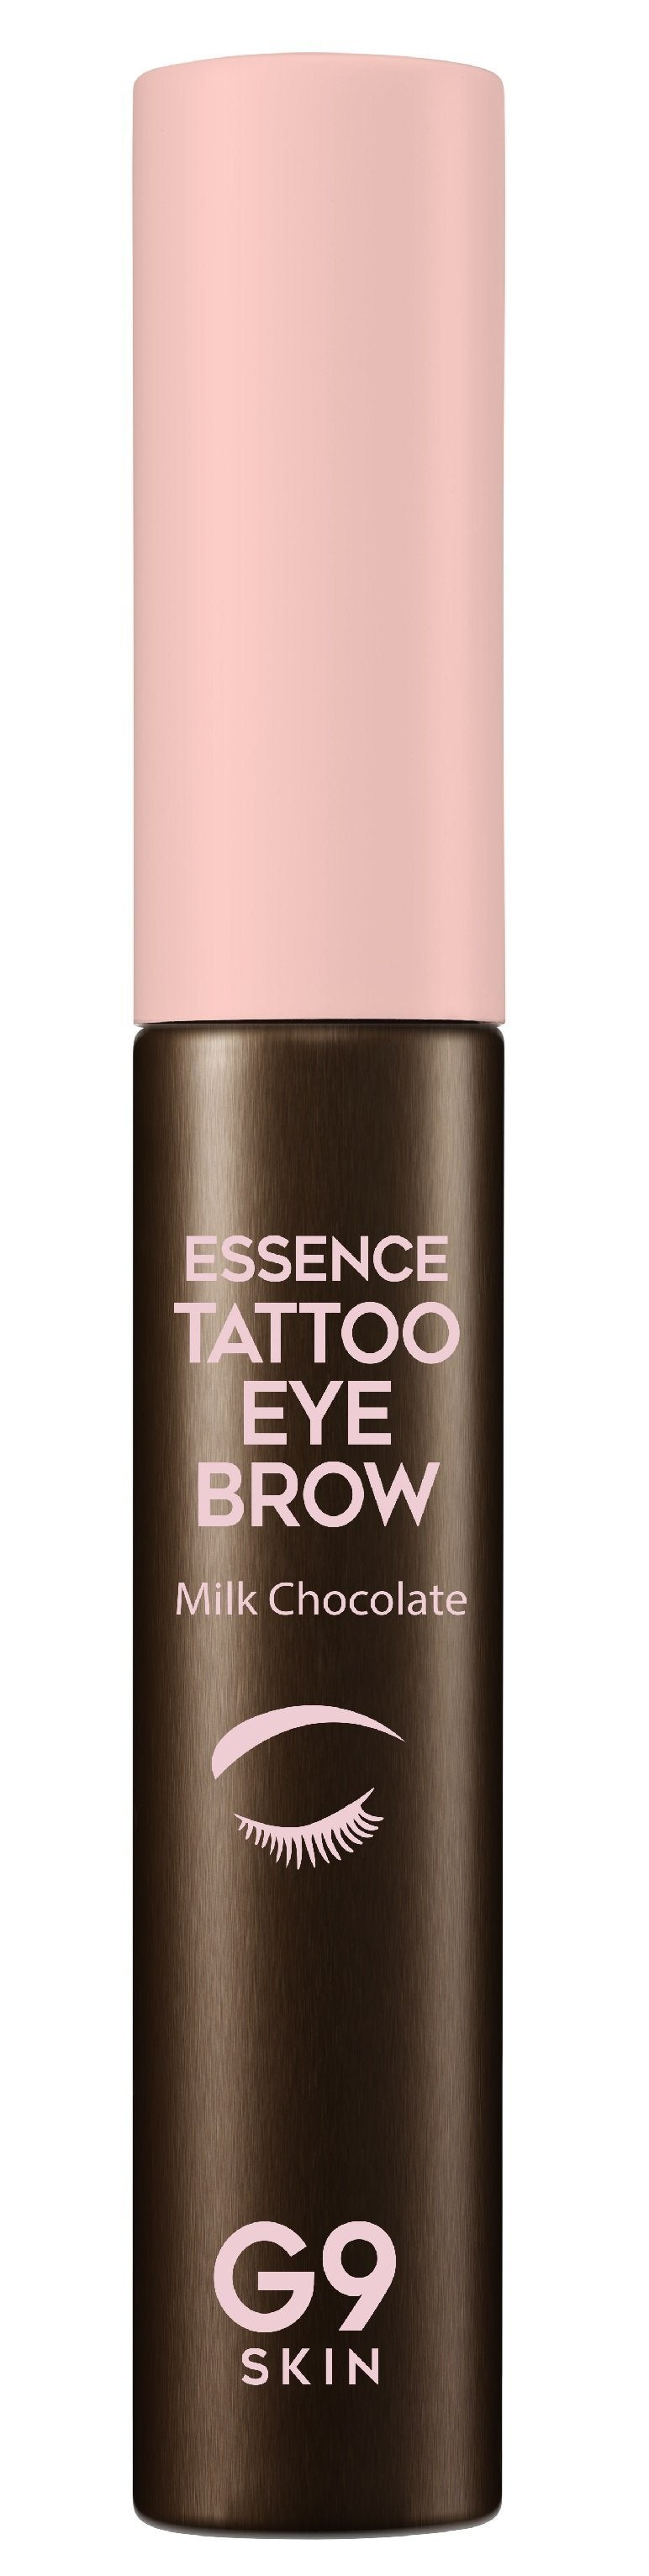 Health & Beauty > Personal Care > Cosmetics > Makeup > Eye Makeup > Eyebrow Enhancers - Essence Tattoo Eye Brow - Milk Chocolate Tatuaż Do Brwi 10 G